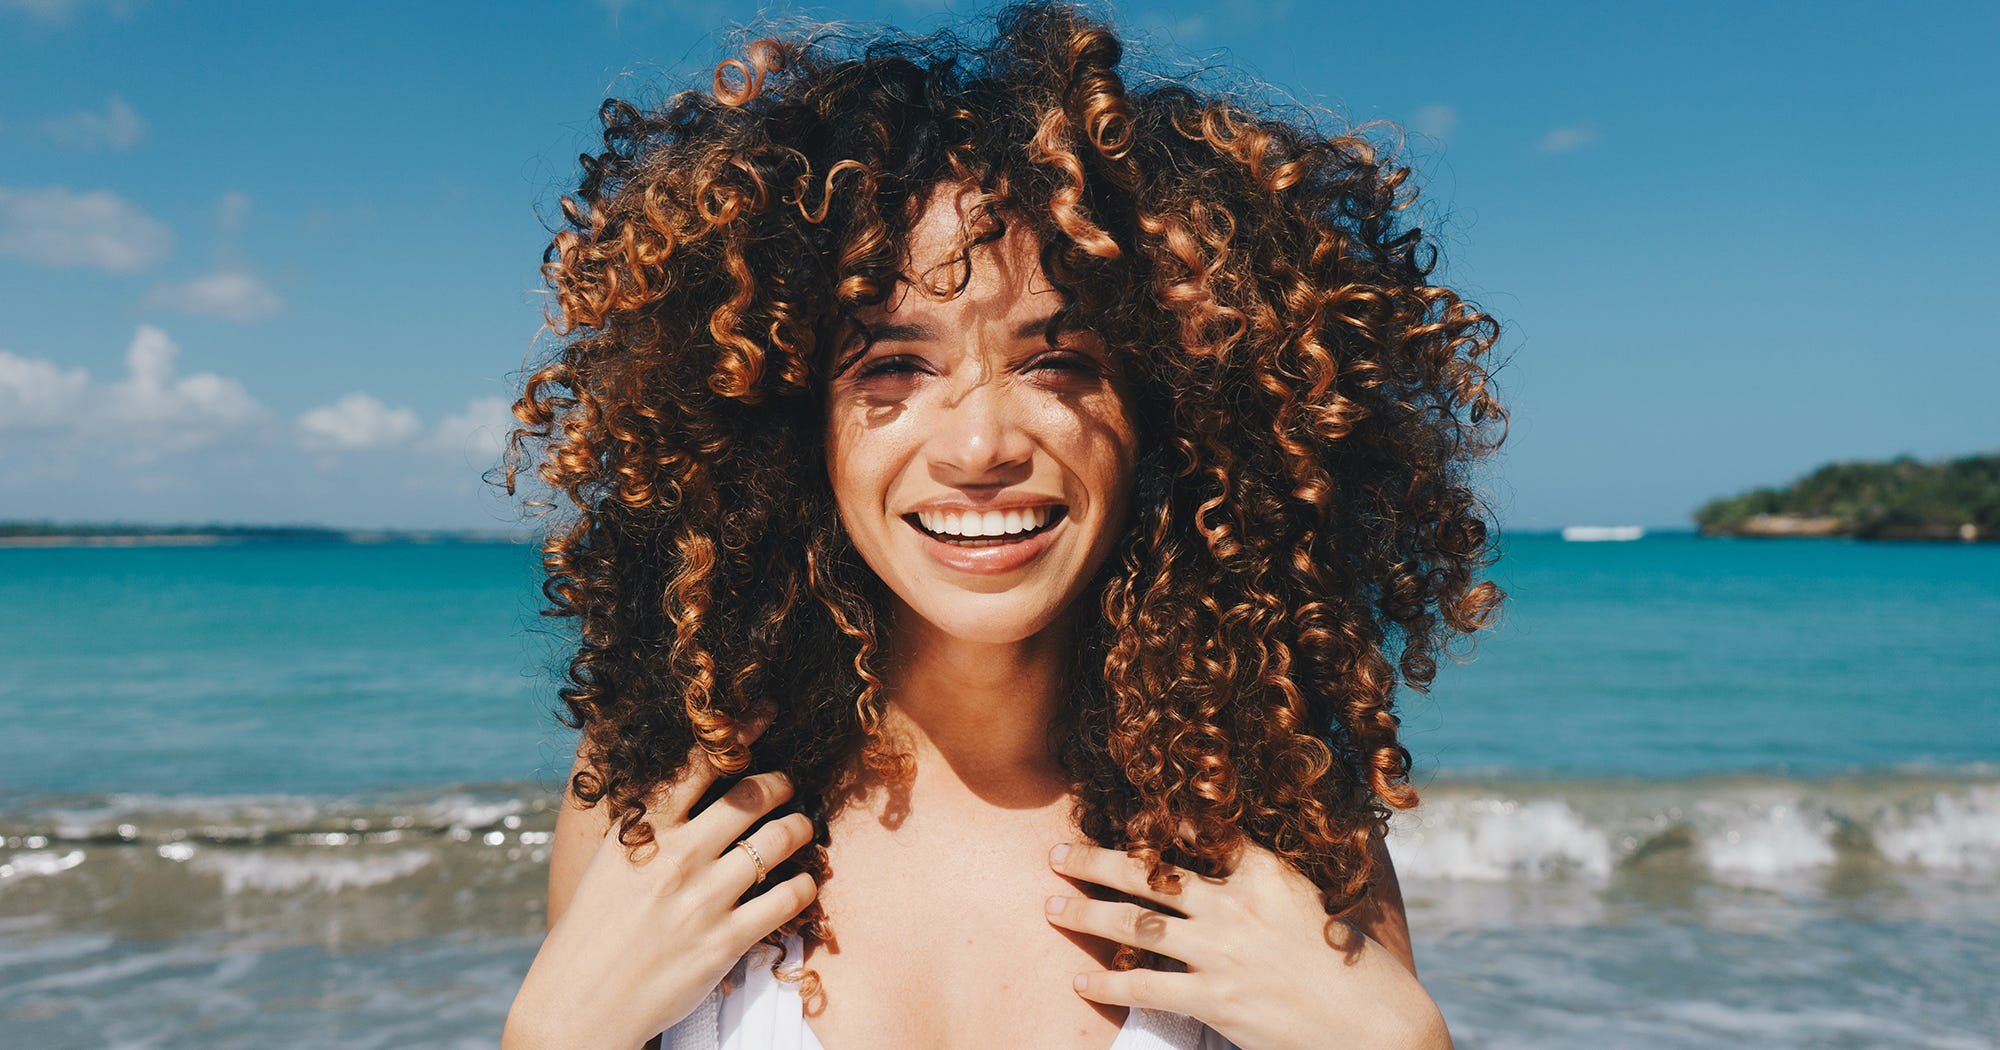 Hairstyles 2019: Popular International Hair Trends And Haircuts 2019